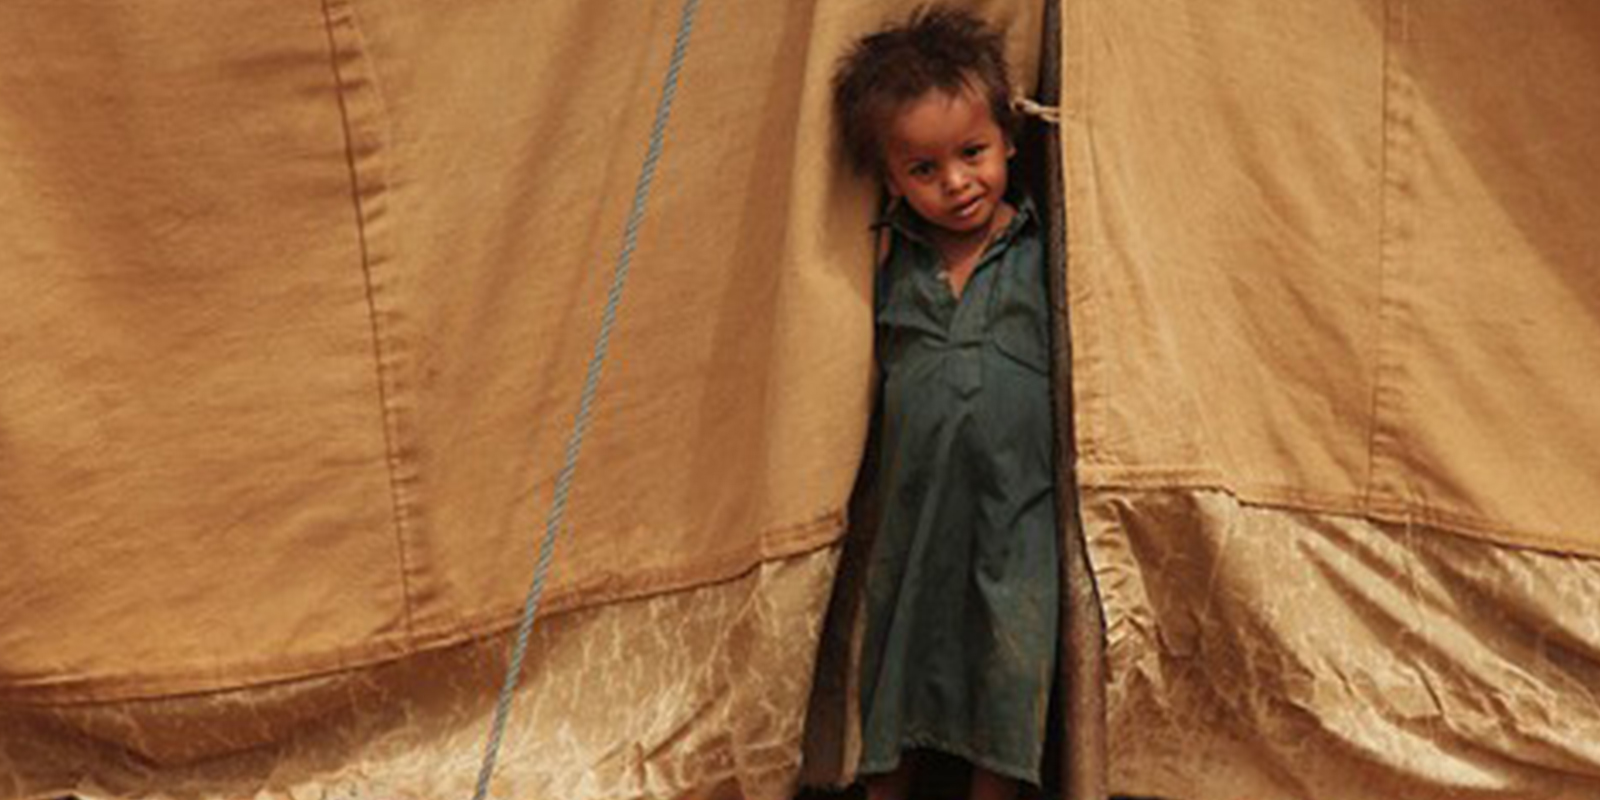 Tackling hunger in Yemen